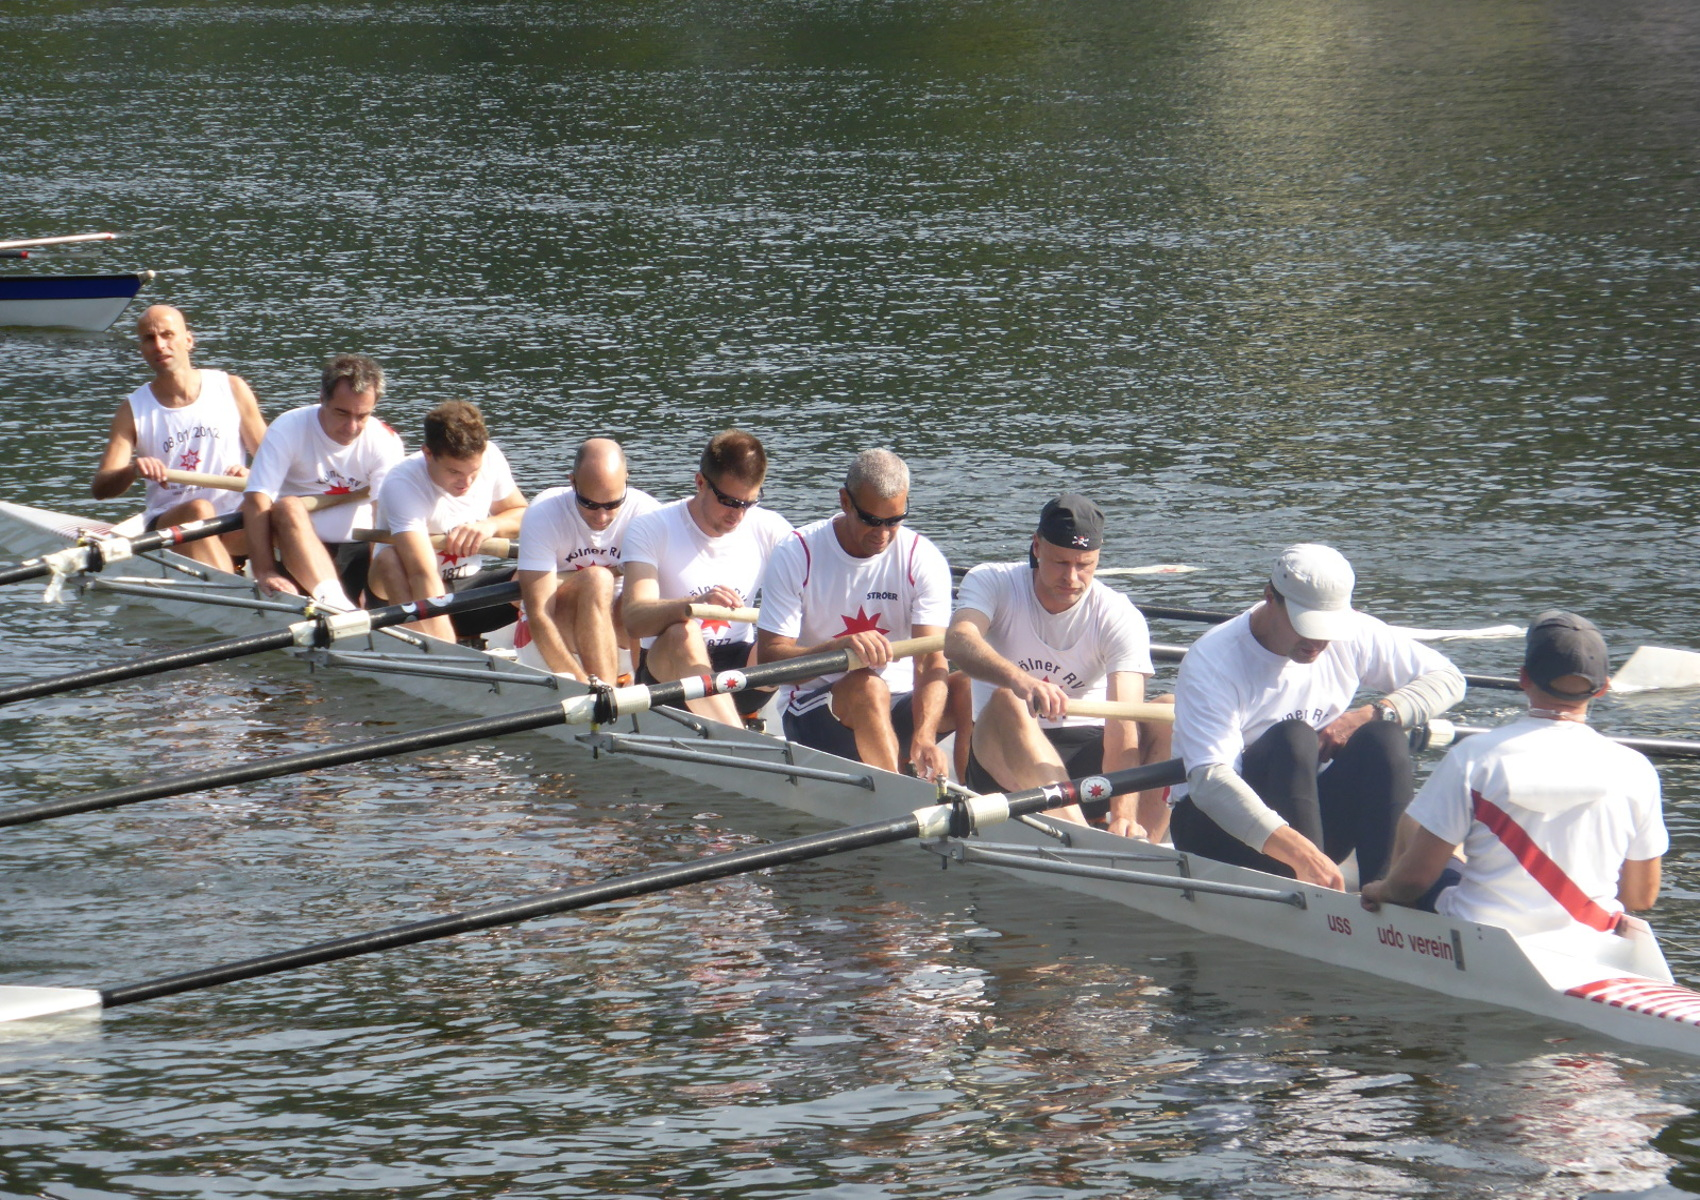 My rowing master team from Cologne